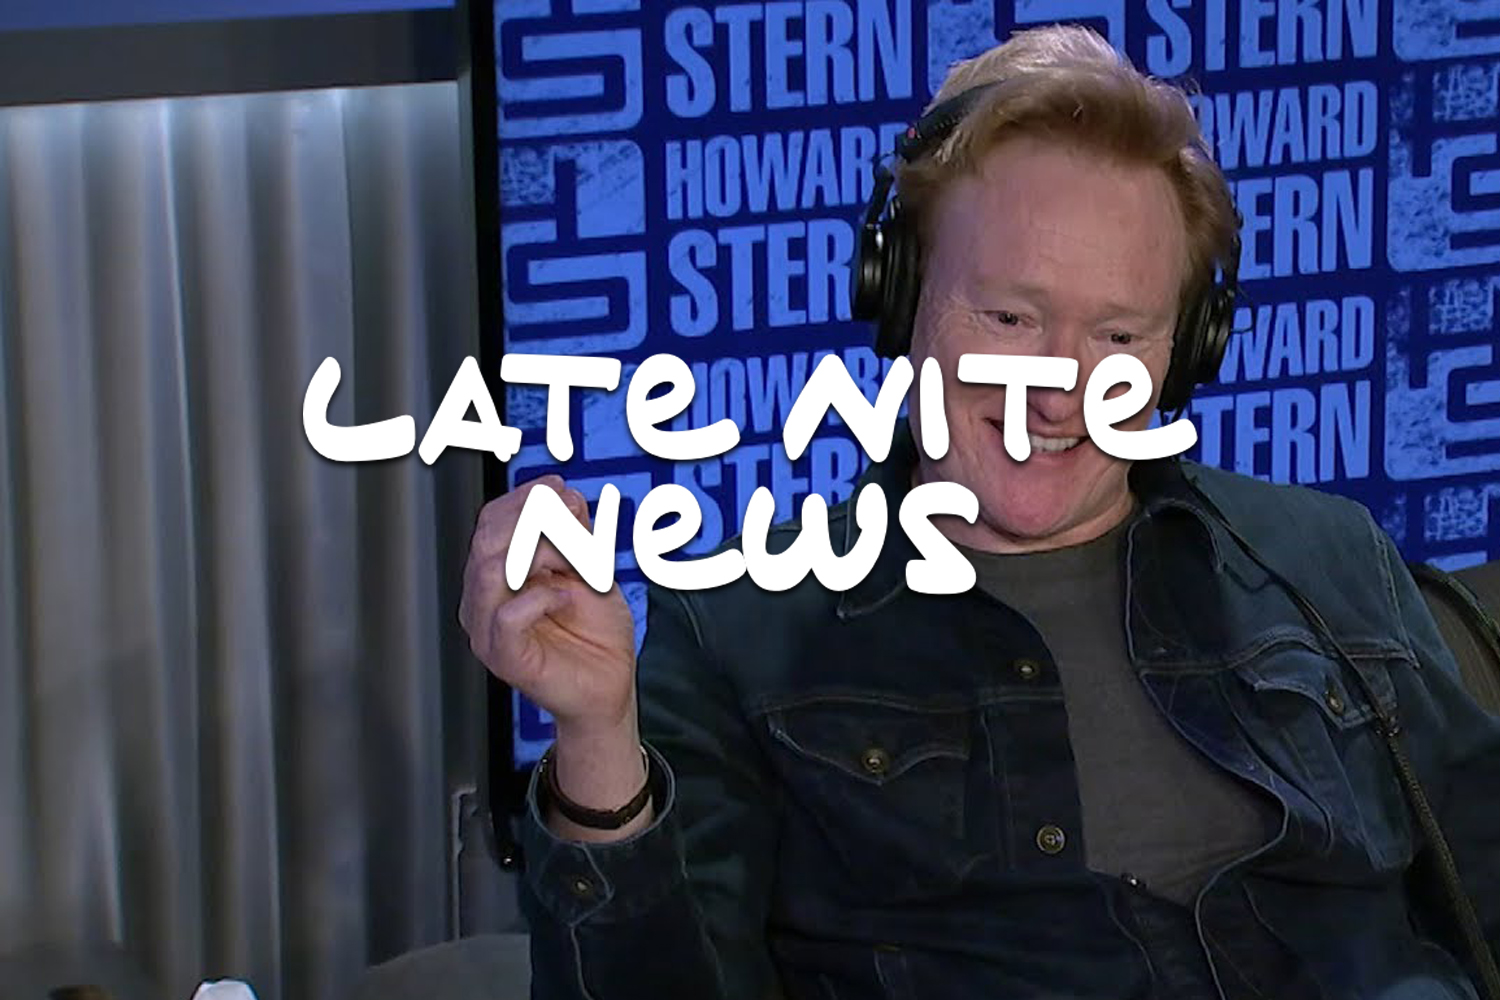 New channel: Late Nite News